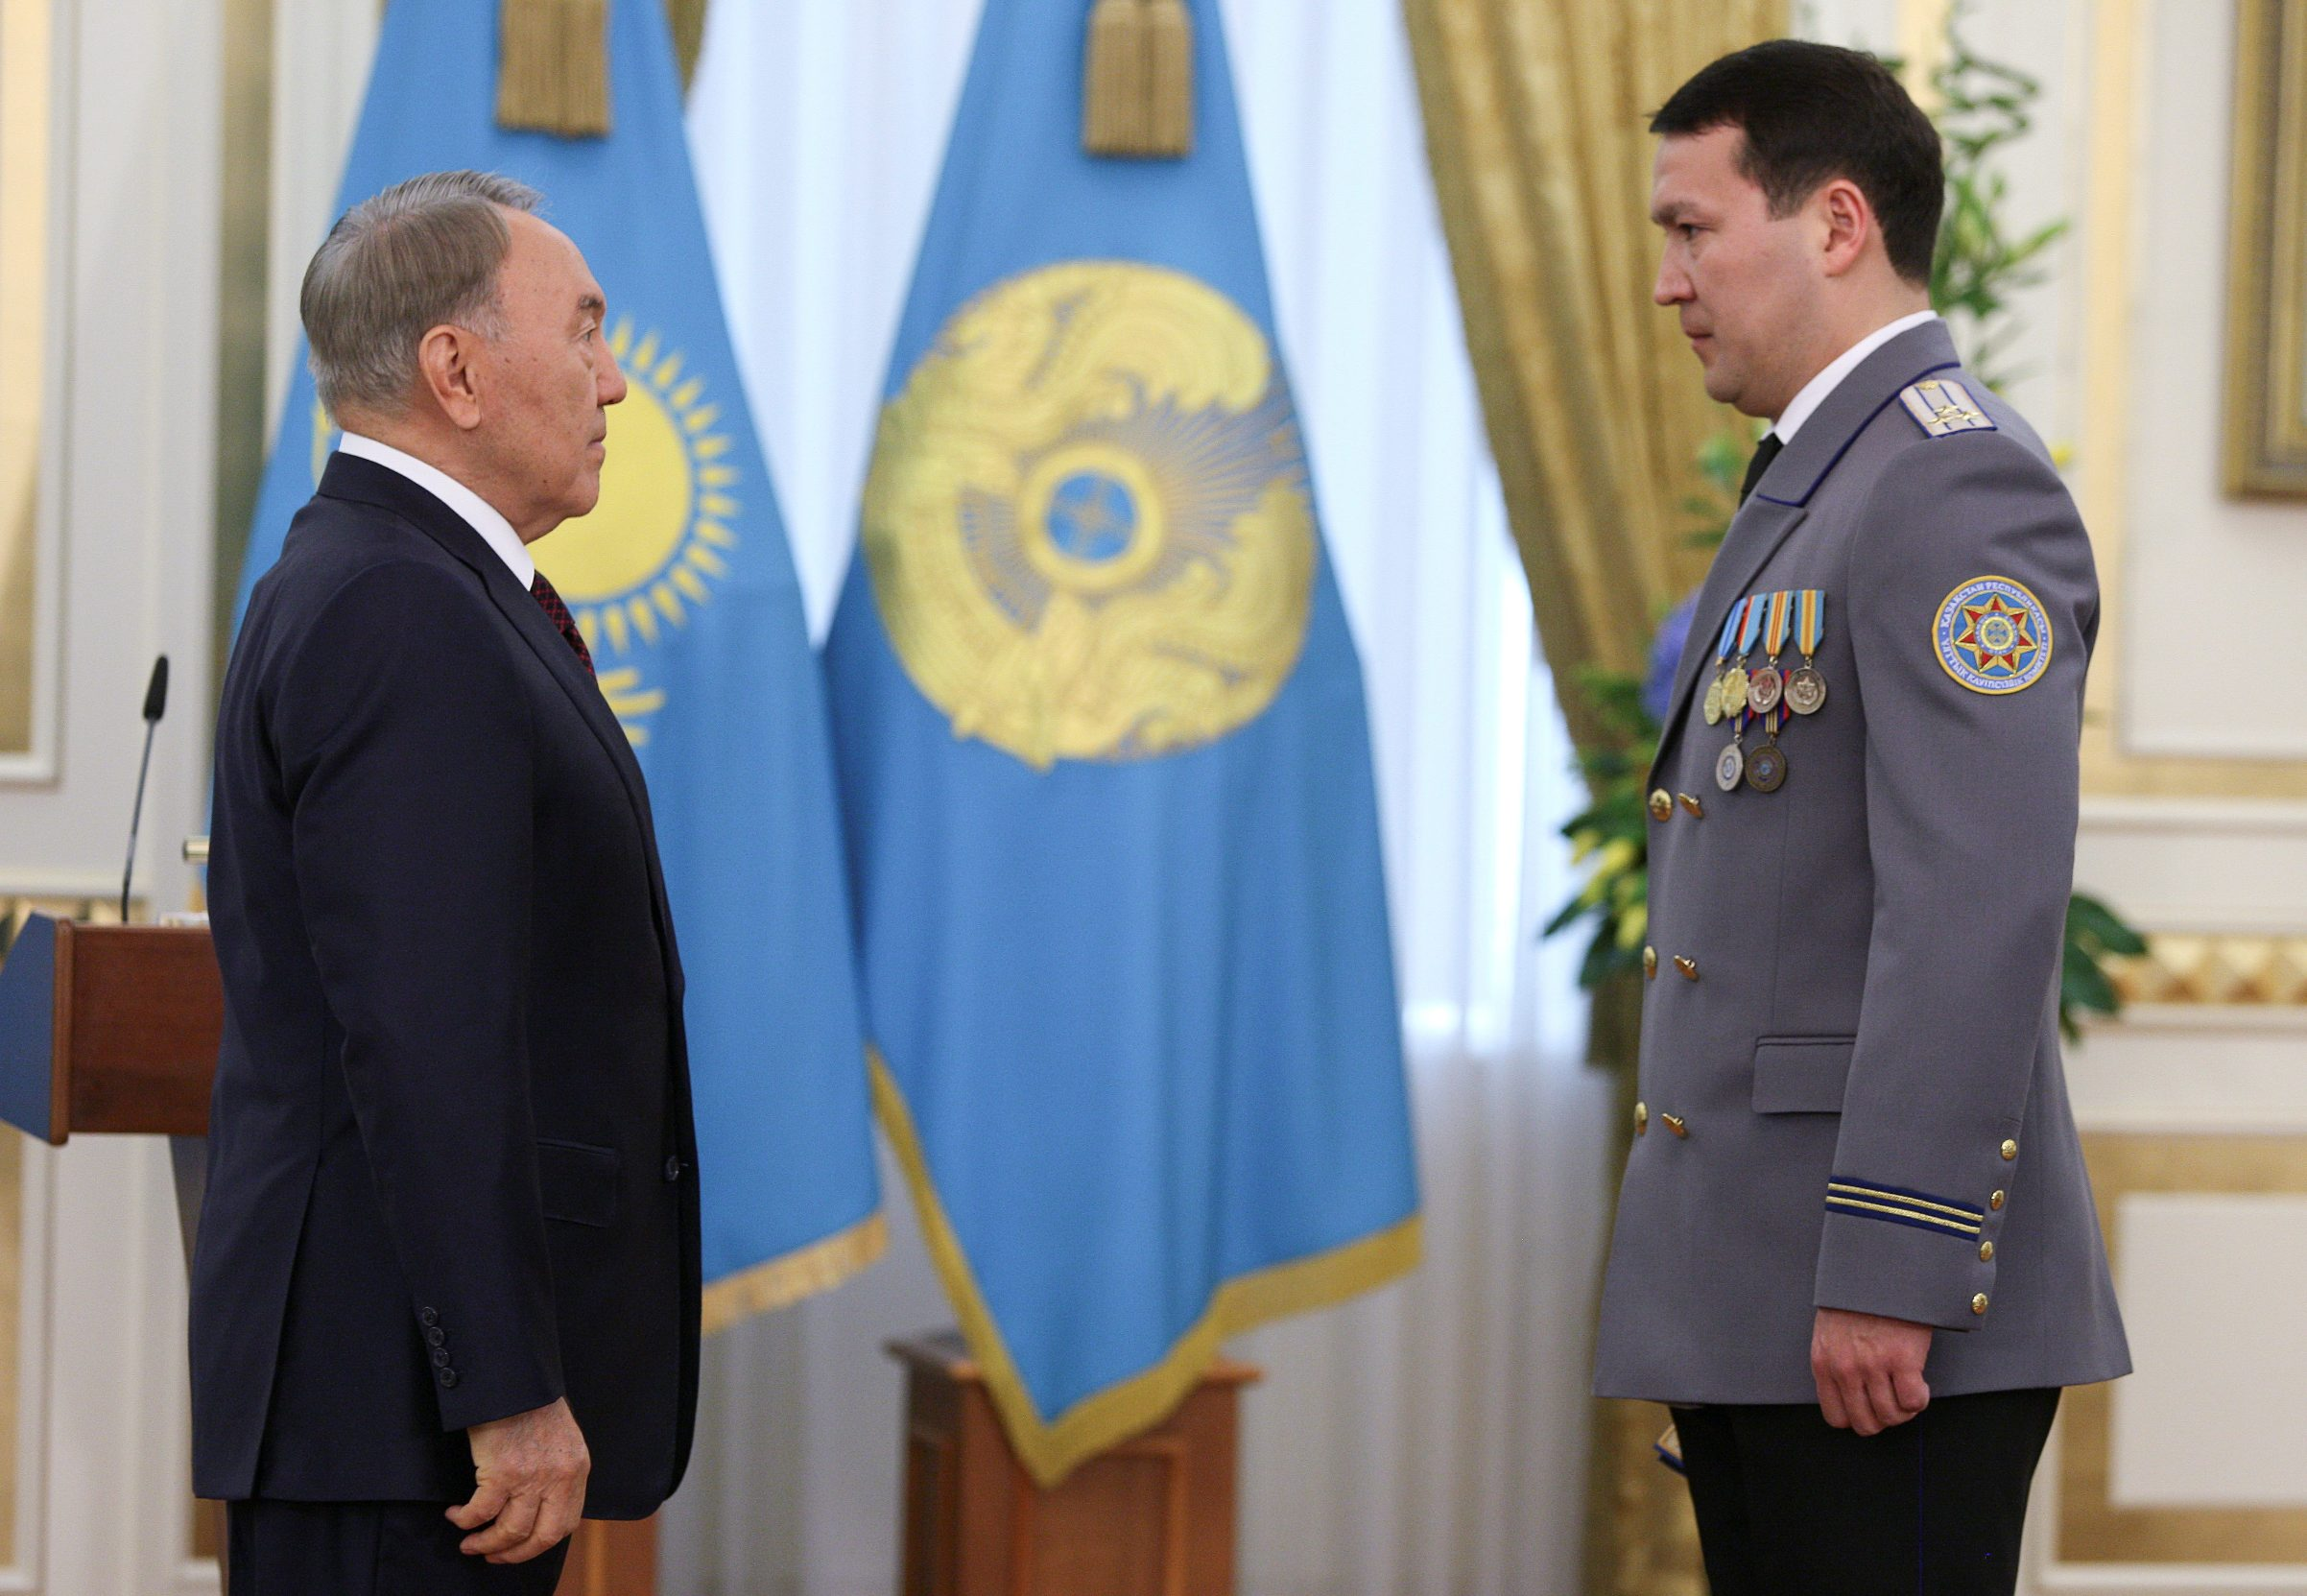 Kazakh President Nursultan Nazarbayev (L) and Deputy Chairman of the National Security Committee Samat Abish attend an awarding ceremony in Astana, Kazakhstan May 6, 2014. Picture taken May 6, 2014. REUTERS/Mukhtar Kholdorbekov